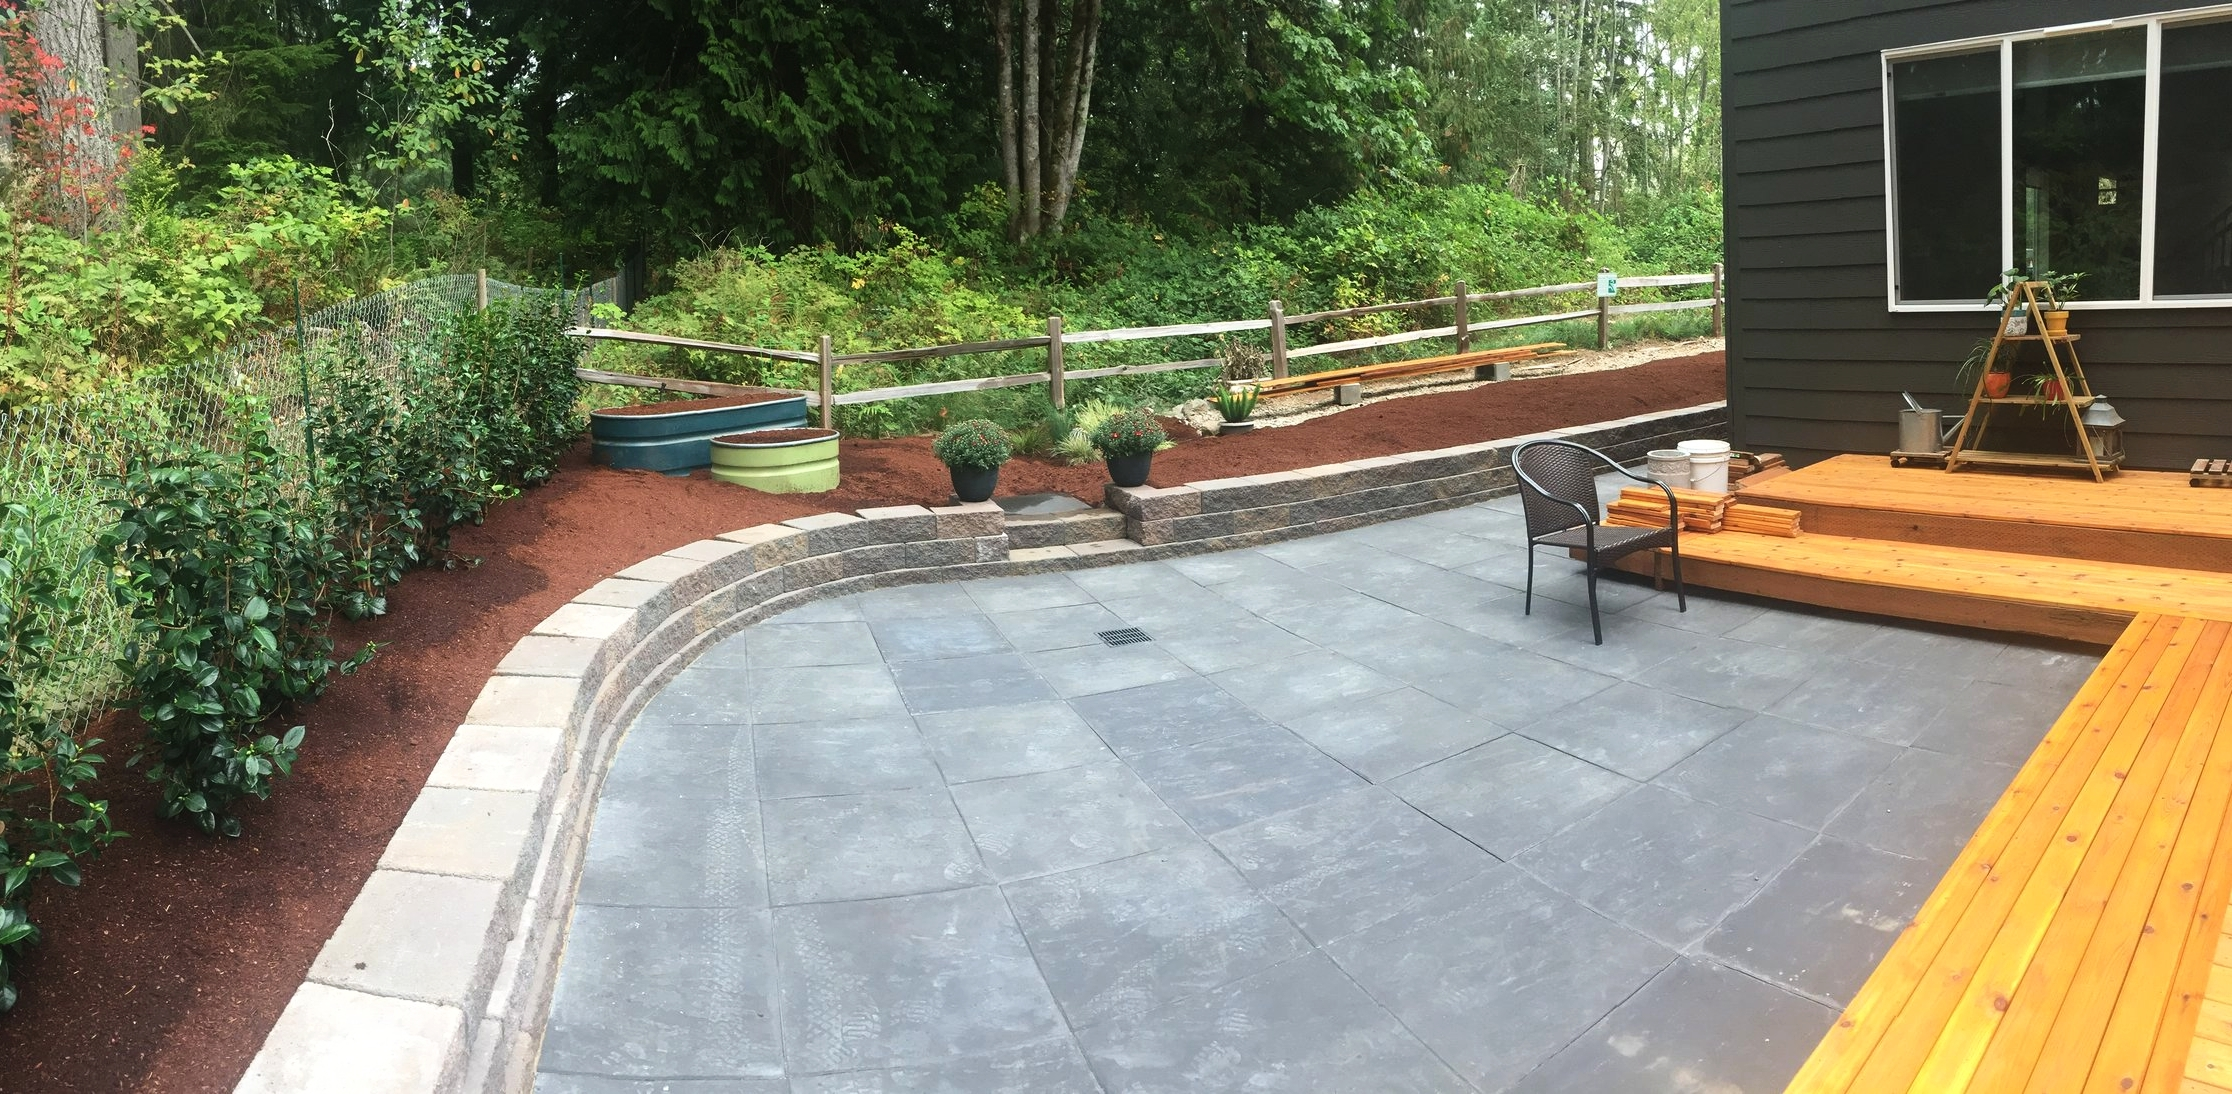 Our Work - Ediscapes seeks to enhance your yard and garden by bringing experience, personable customer service, and creative designs to the forefront. We specialize in gardens and beds, hardscape including patios, retaining walls, and pathways, and many more tasteful design elements. Below you will find a few examples of recent projects our team has completed within the Greater Seattle Area.